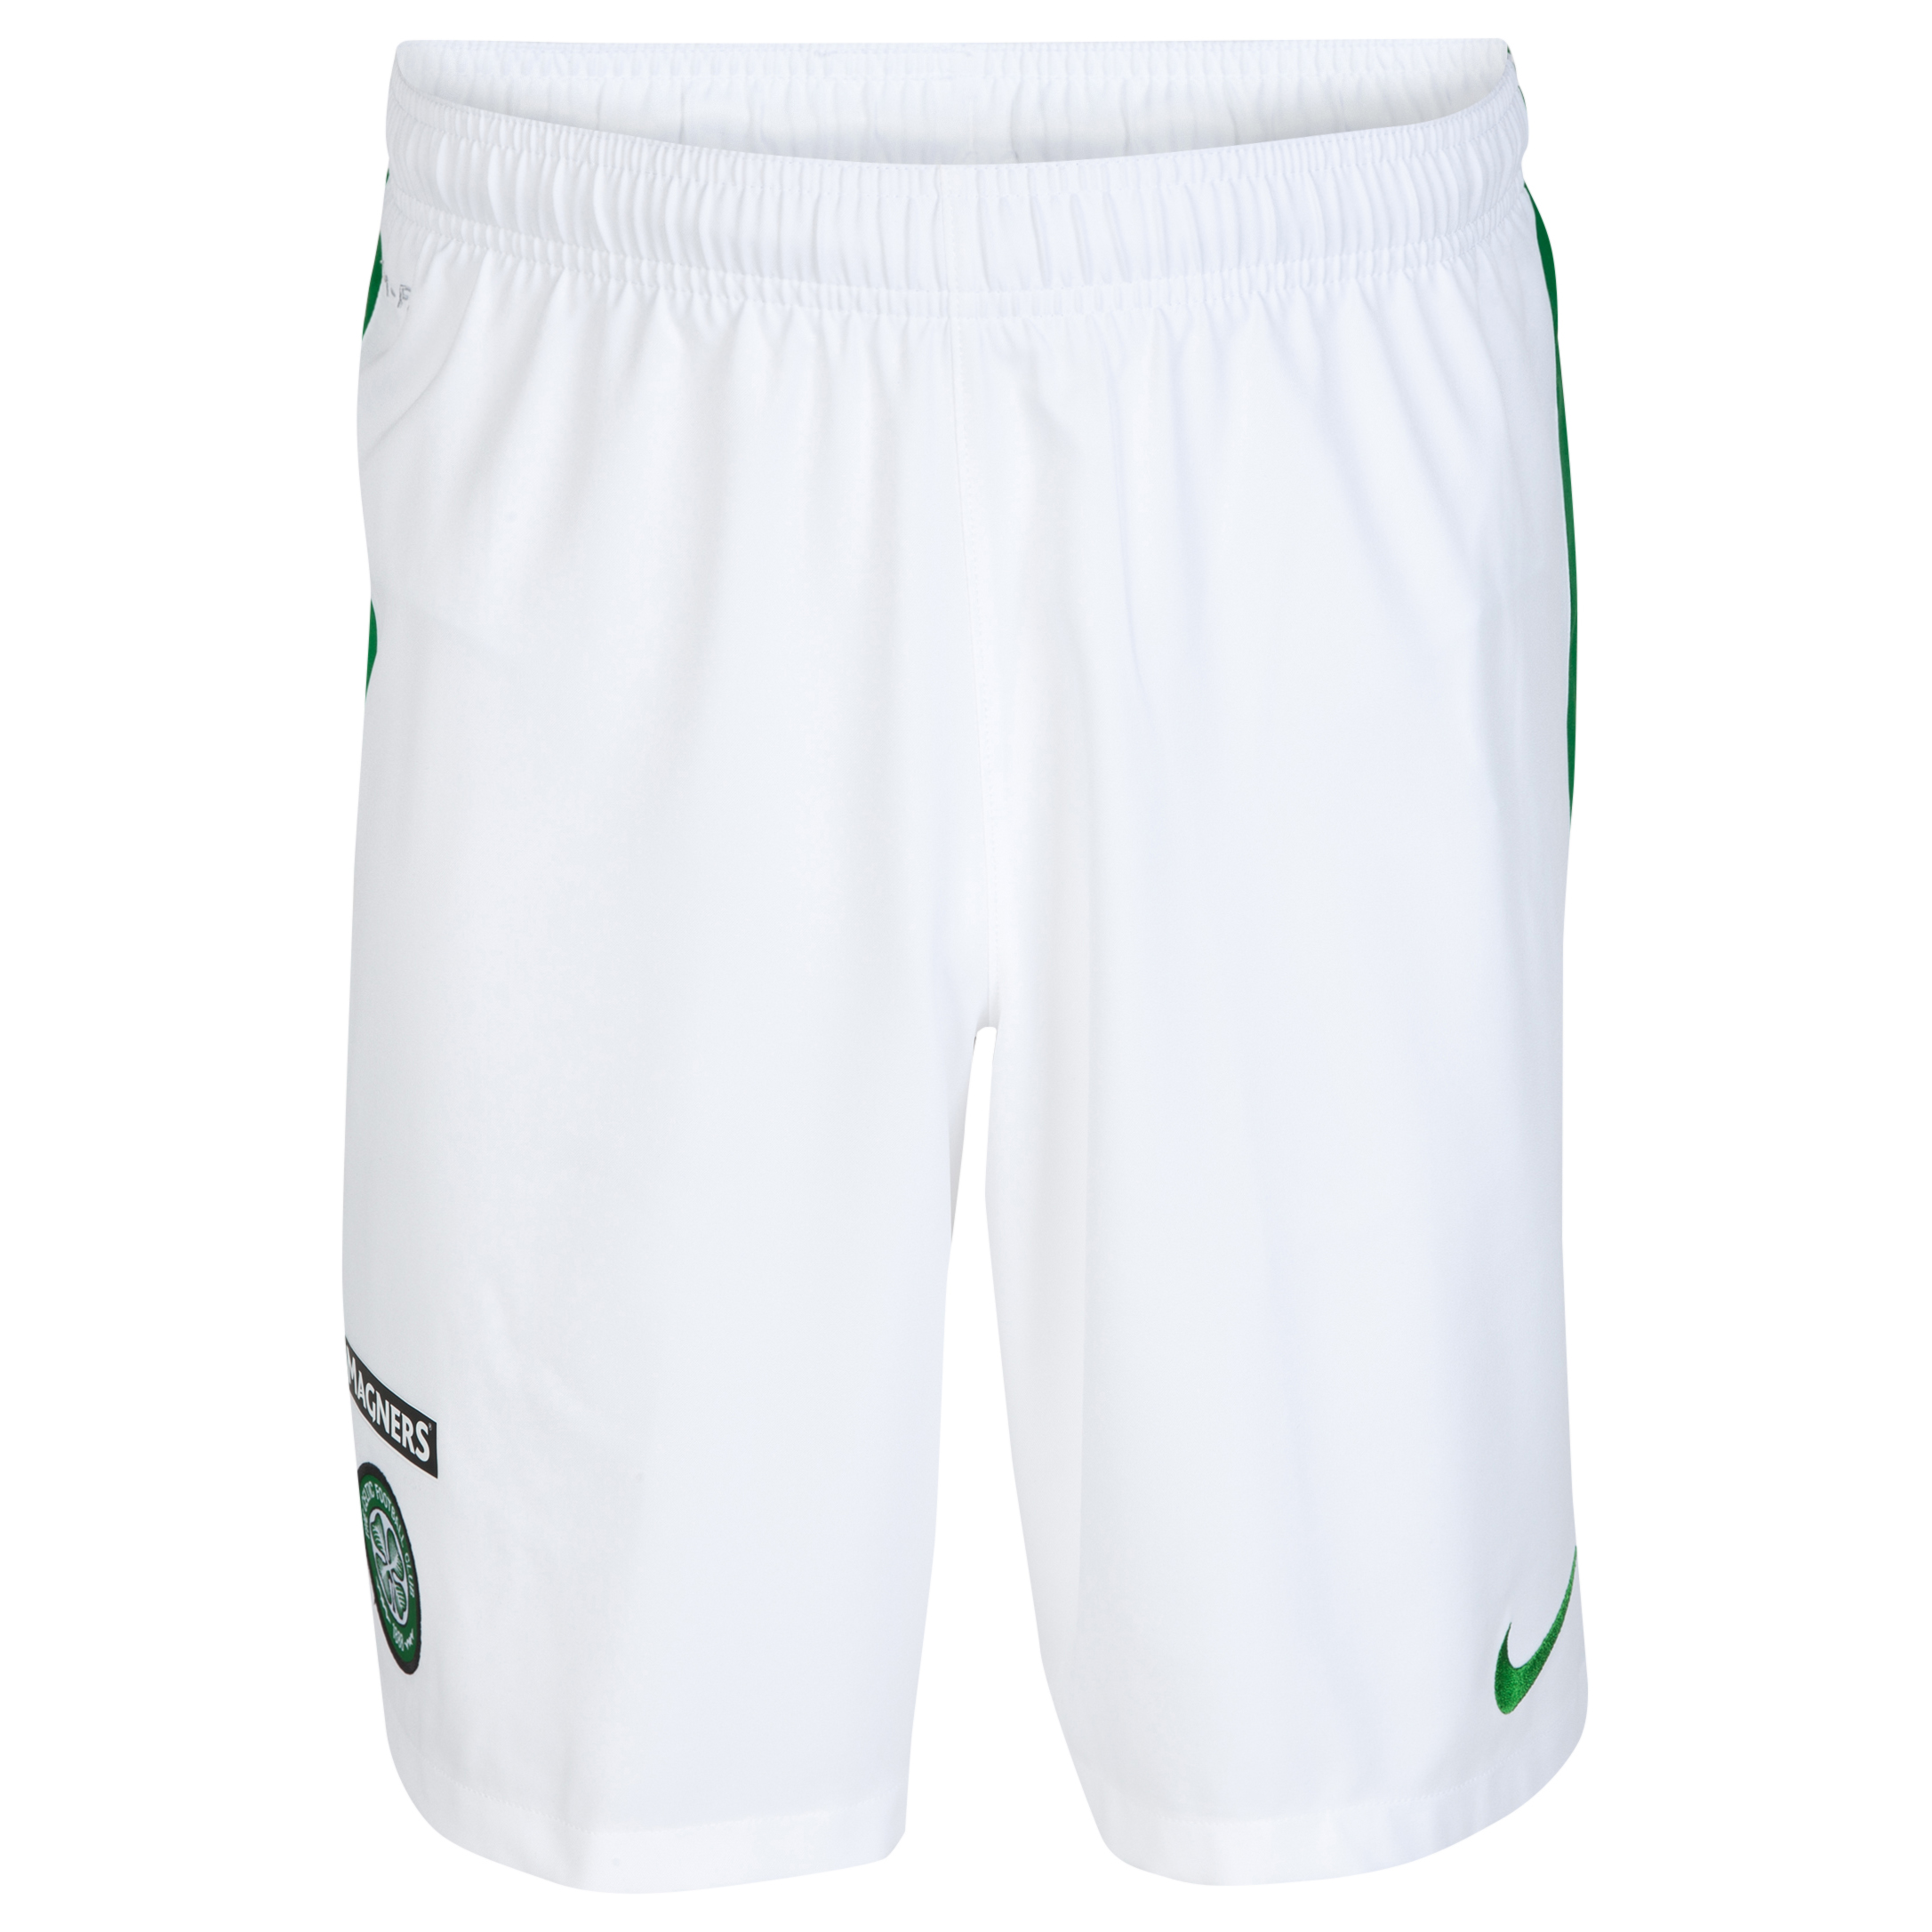 Celtic 3rd Short 2014/15 White